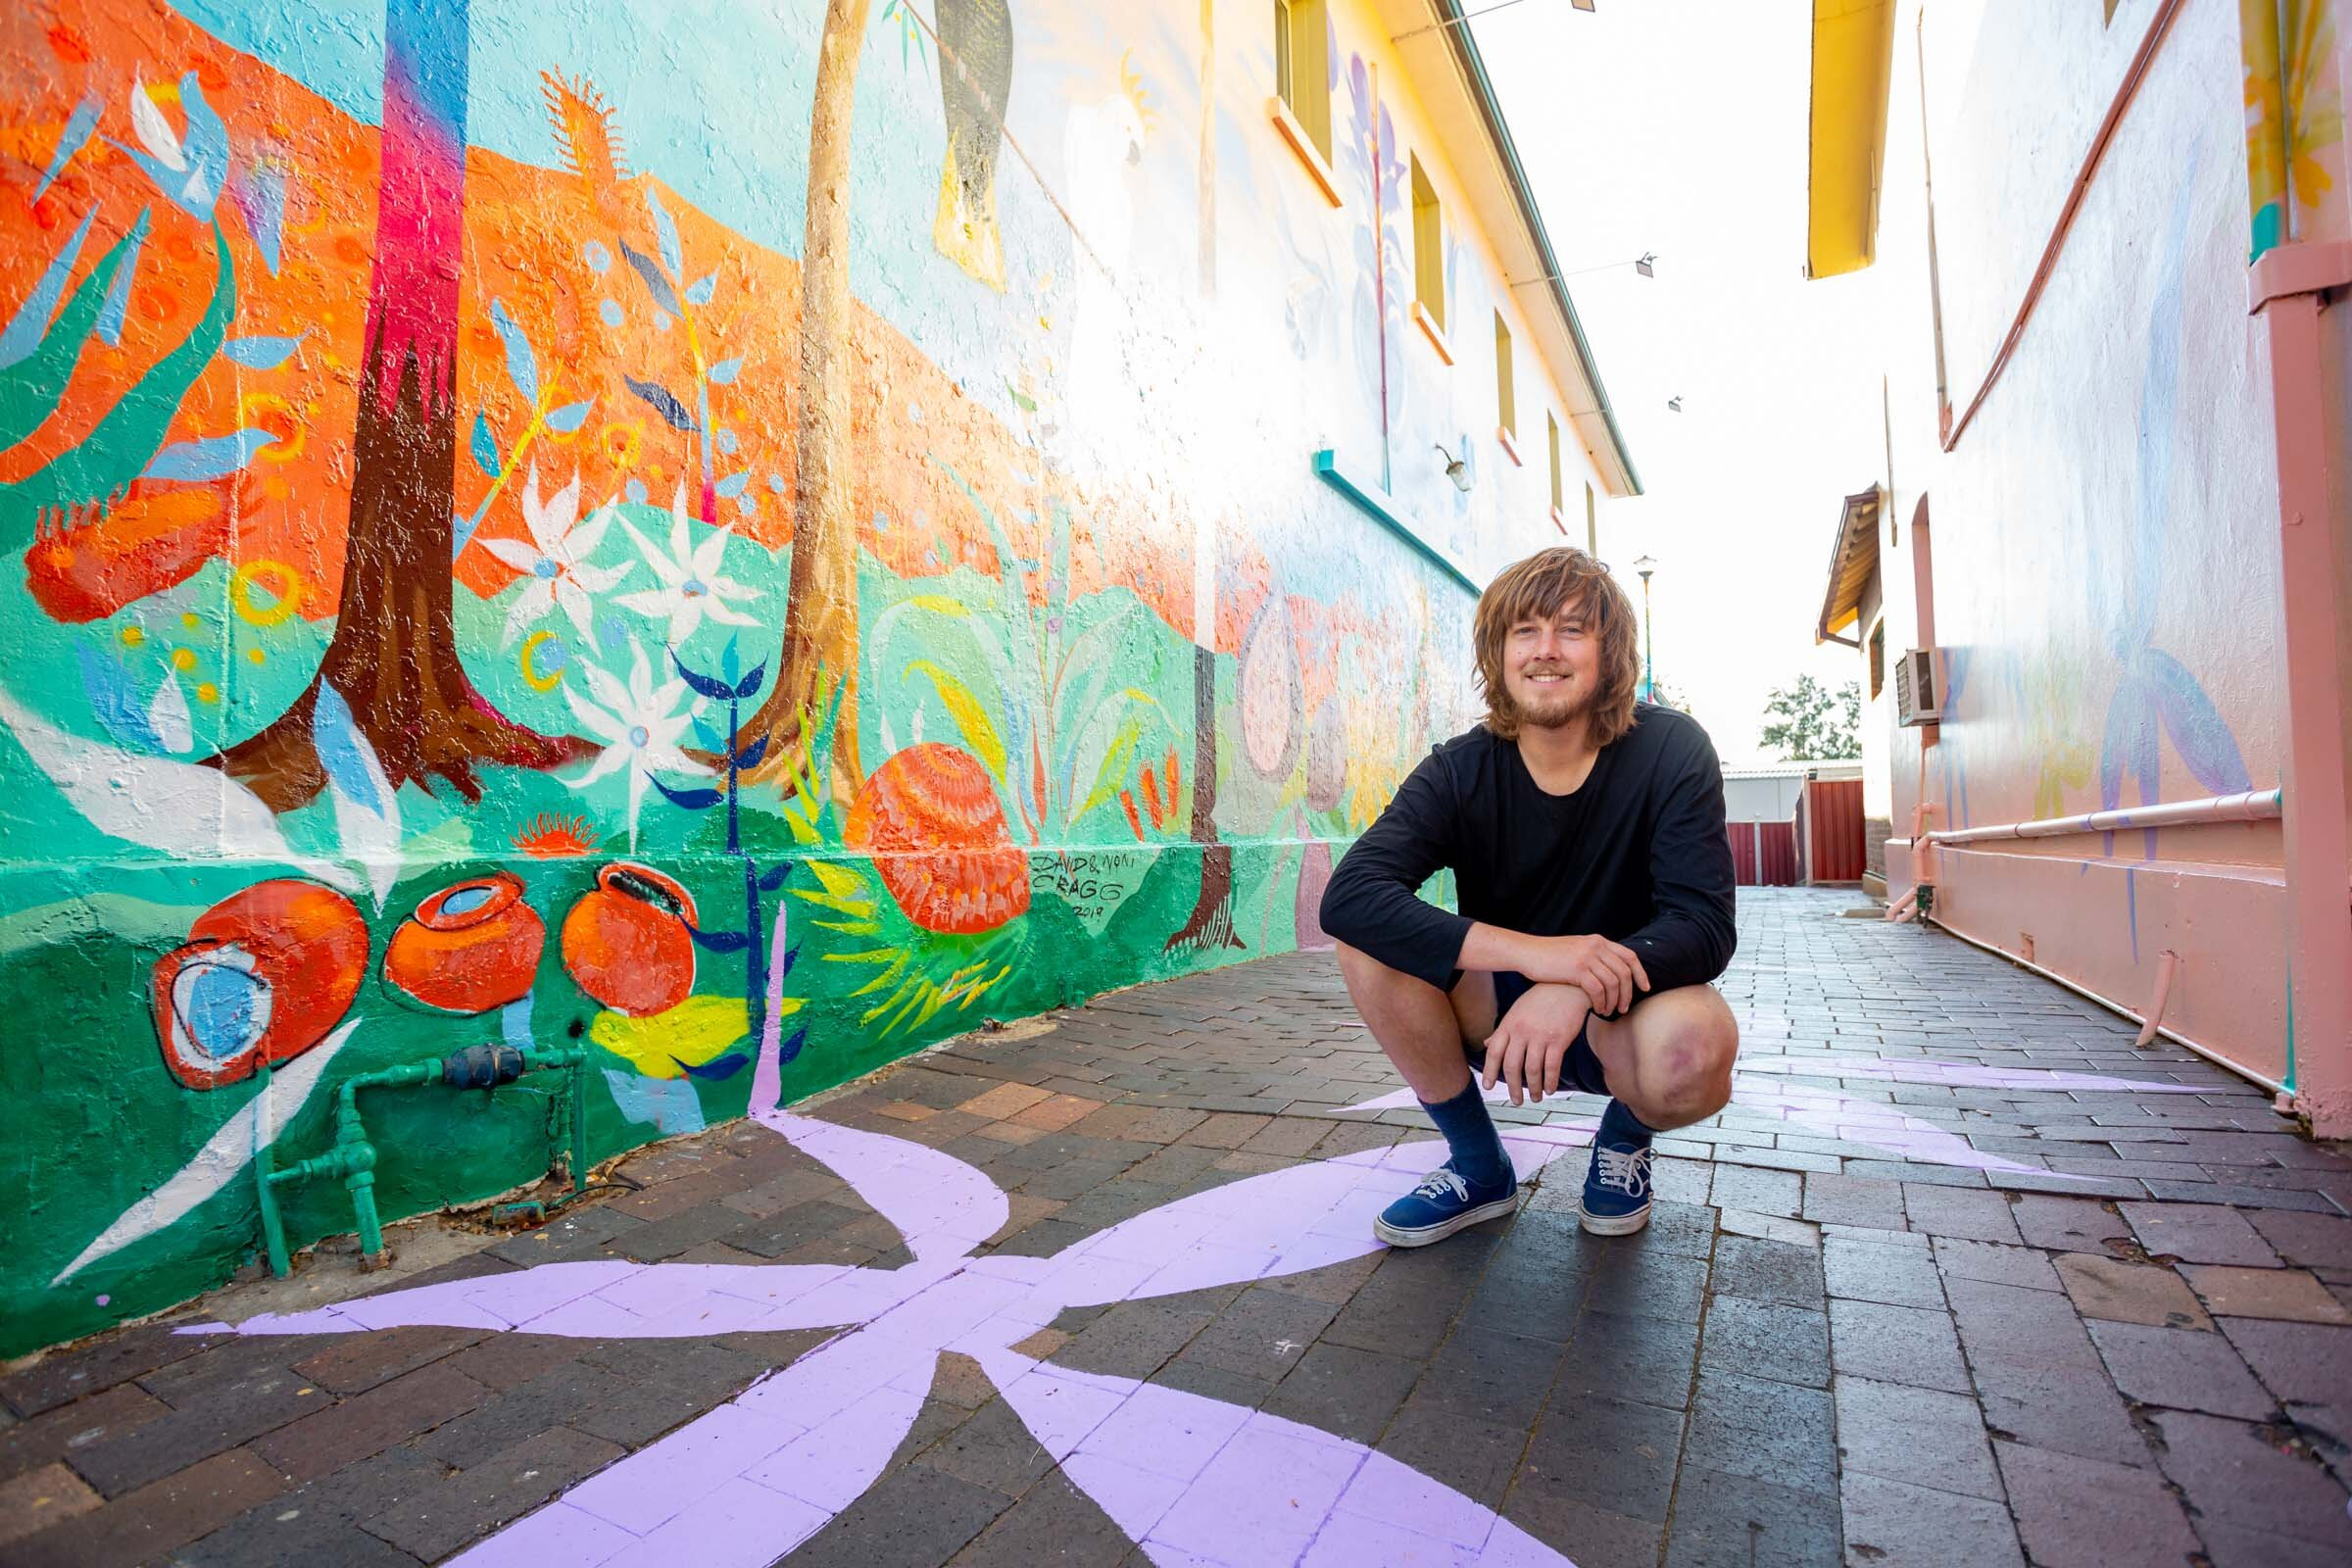 David Cragg in front of his mural in Windsor. Image credit: Art Pharmacy Consulting / Jodie Barker